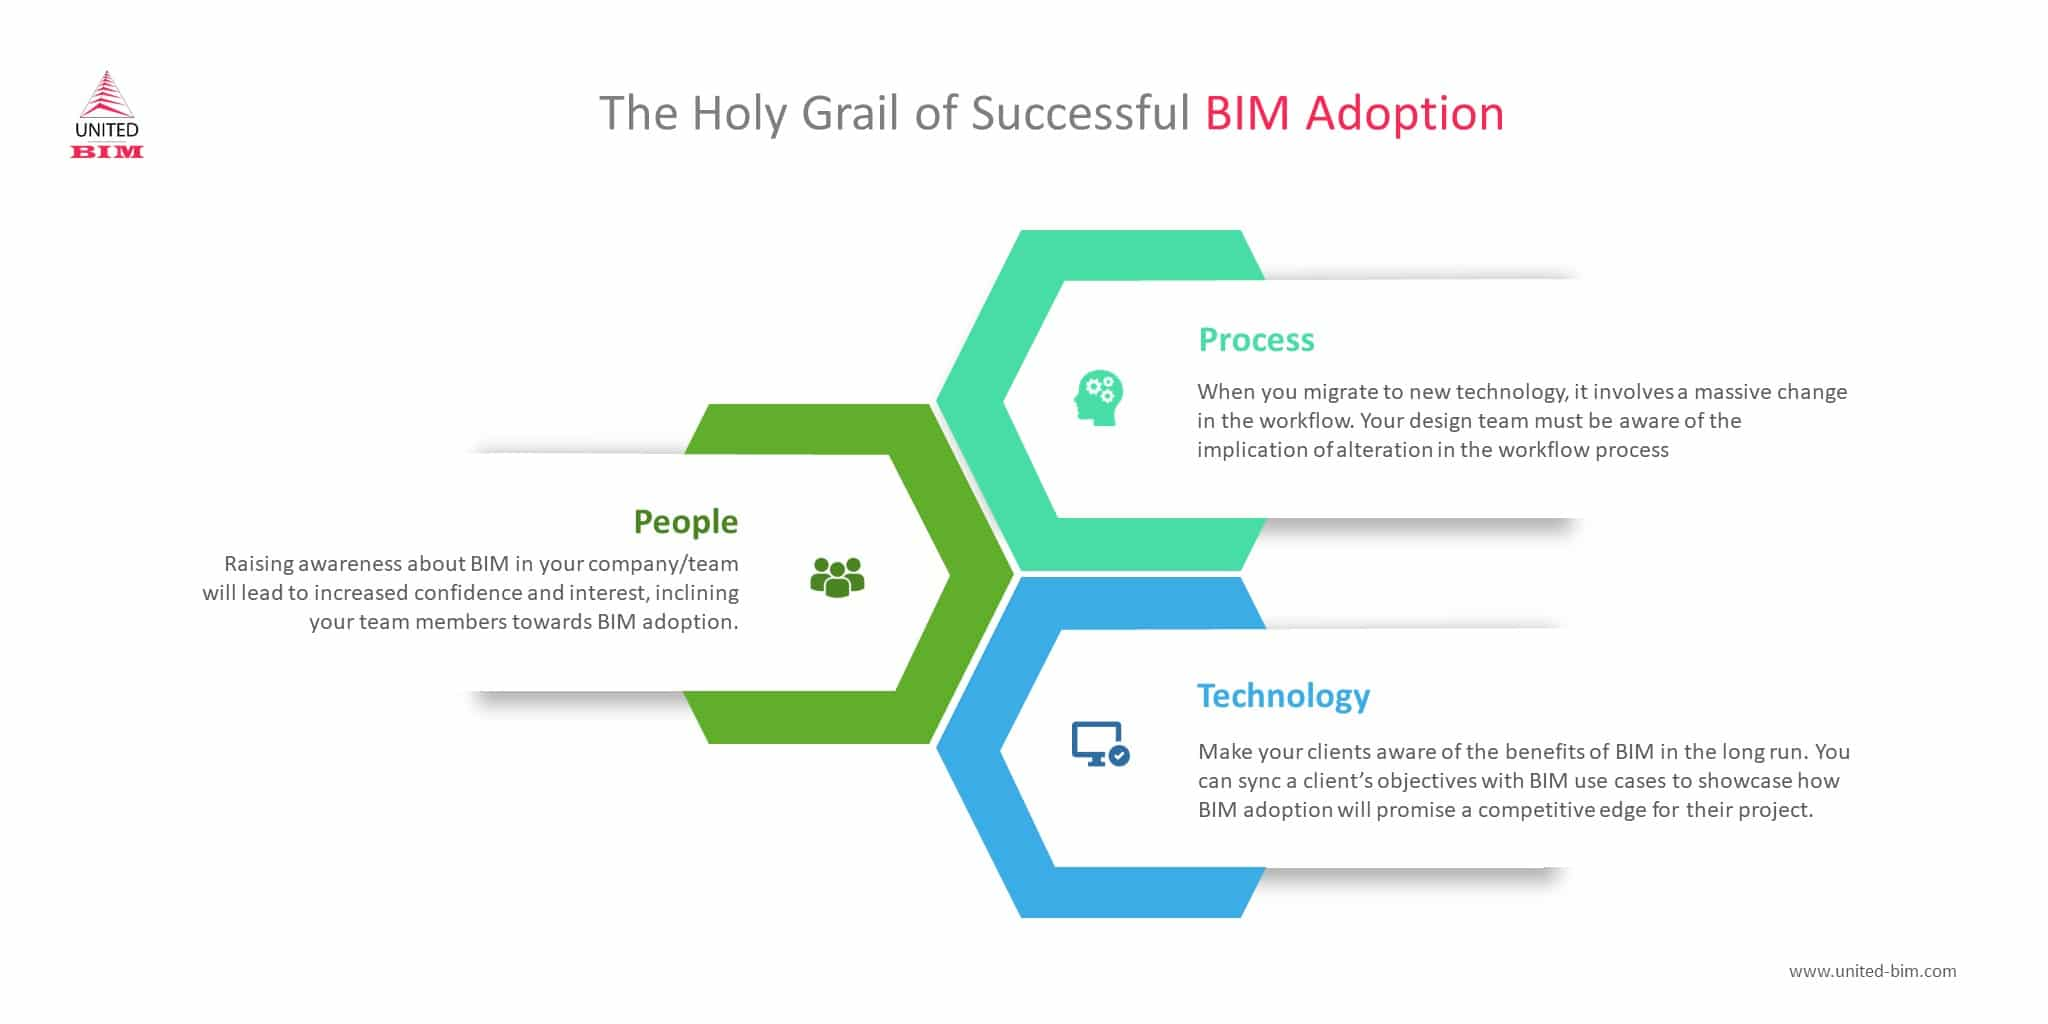 The Holy Grail of Successful BIM Adoption- Overcoming the barriers of BIM implementation